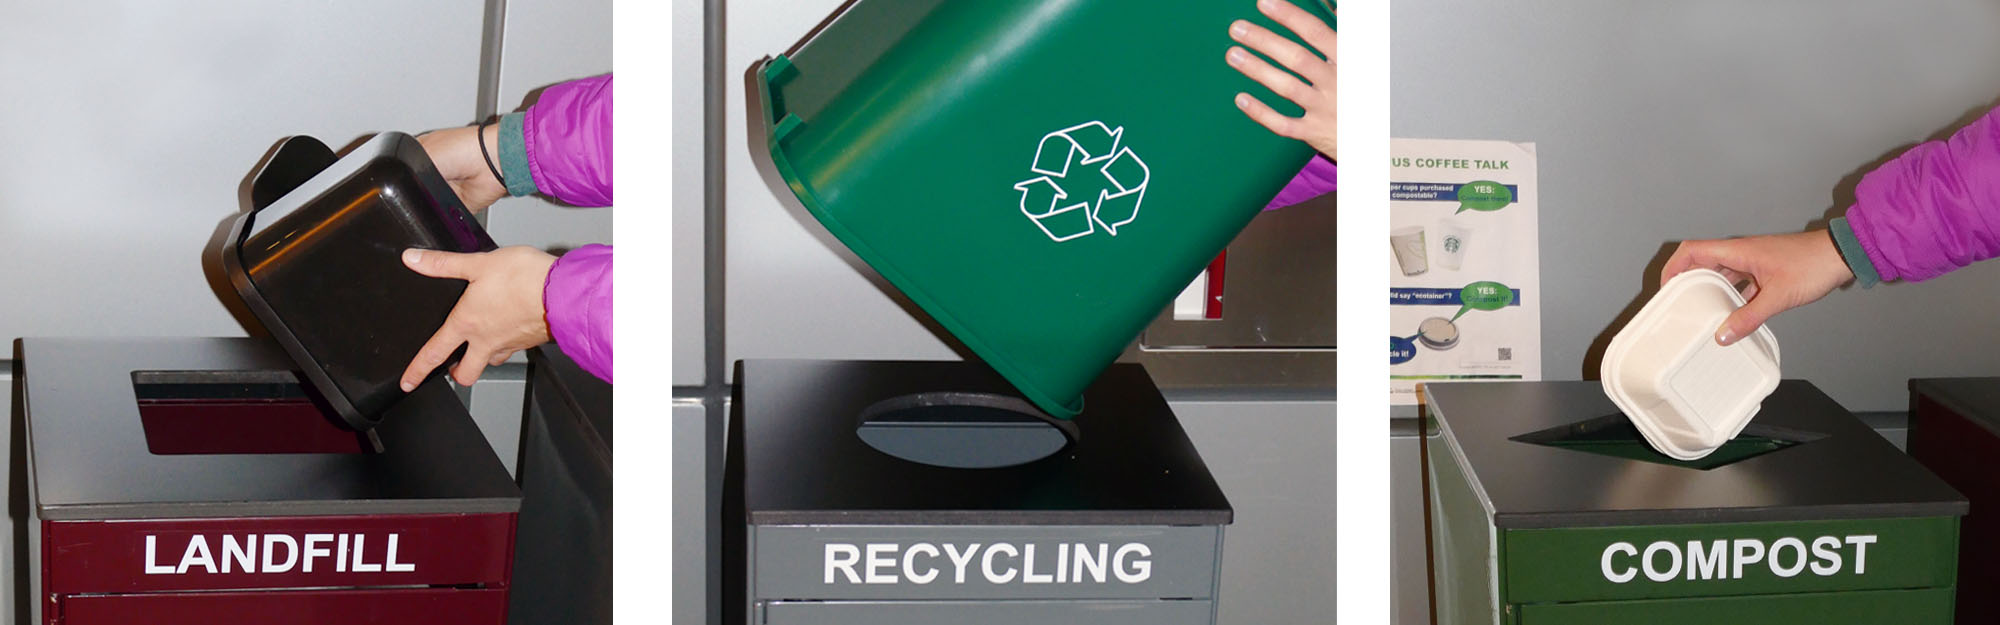 person's hands emptying black container in landfill receptacle, a green container in a recycling receptacle and a small compostable clamshell container in a compost receptacle